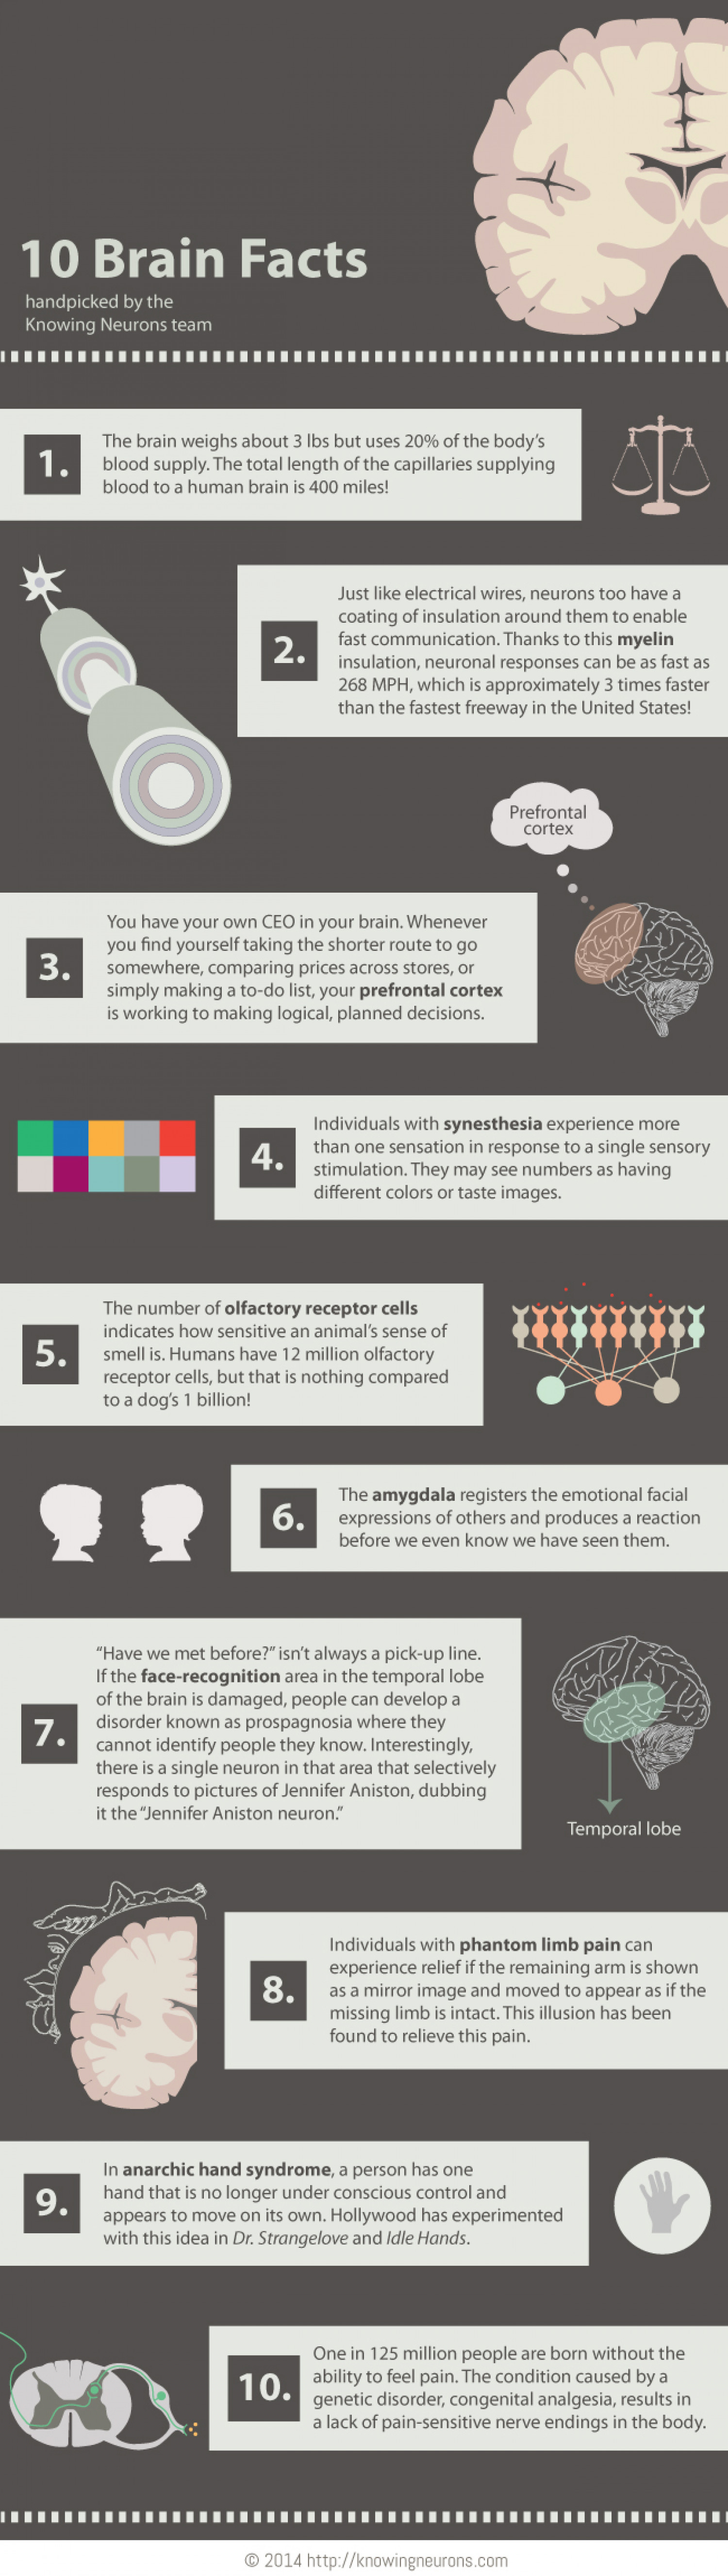 10 Brain Facts Infographic